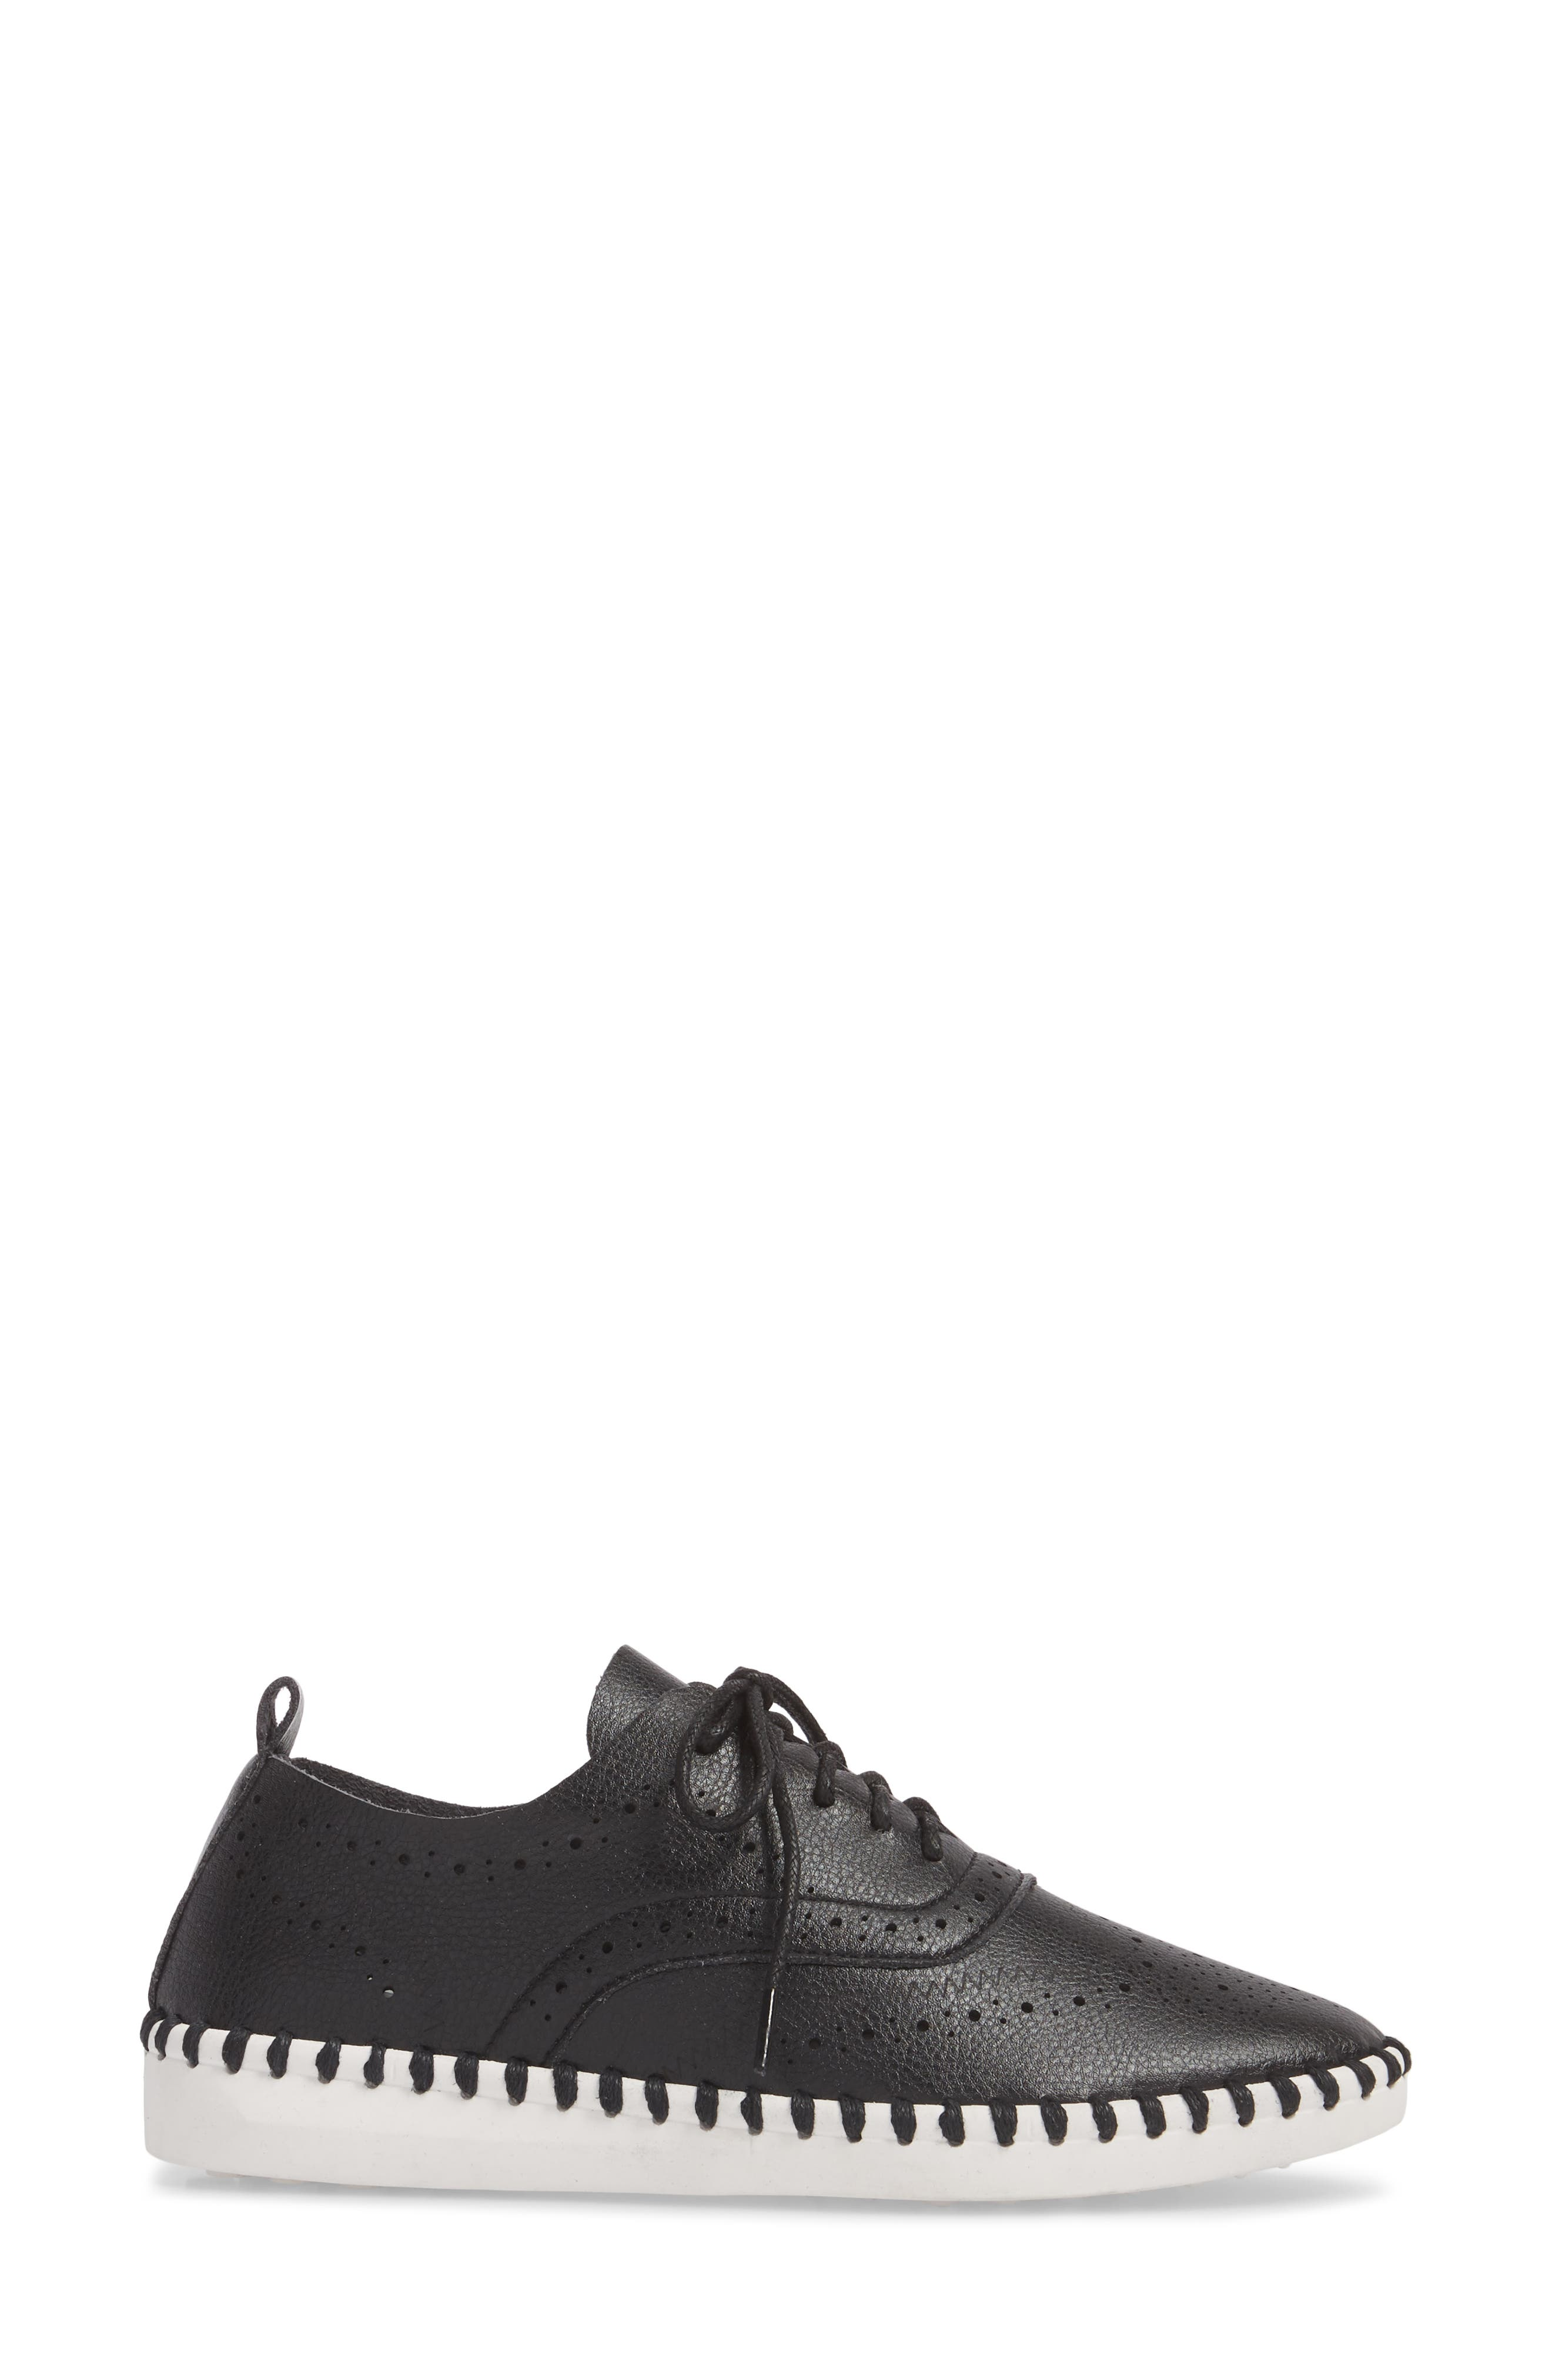 Salinas Waterproof Brogue Lace-Up Sneaker,                             Alternate thumbnail 3, color,                             BLACK FAUX LEATHER